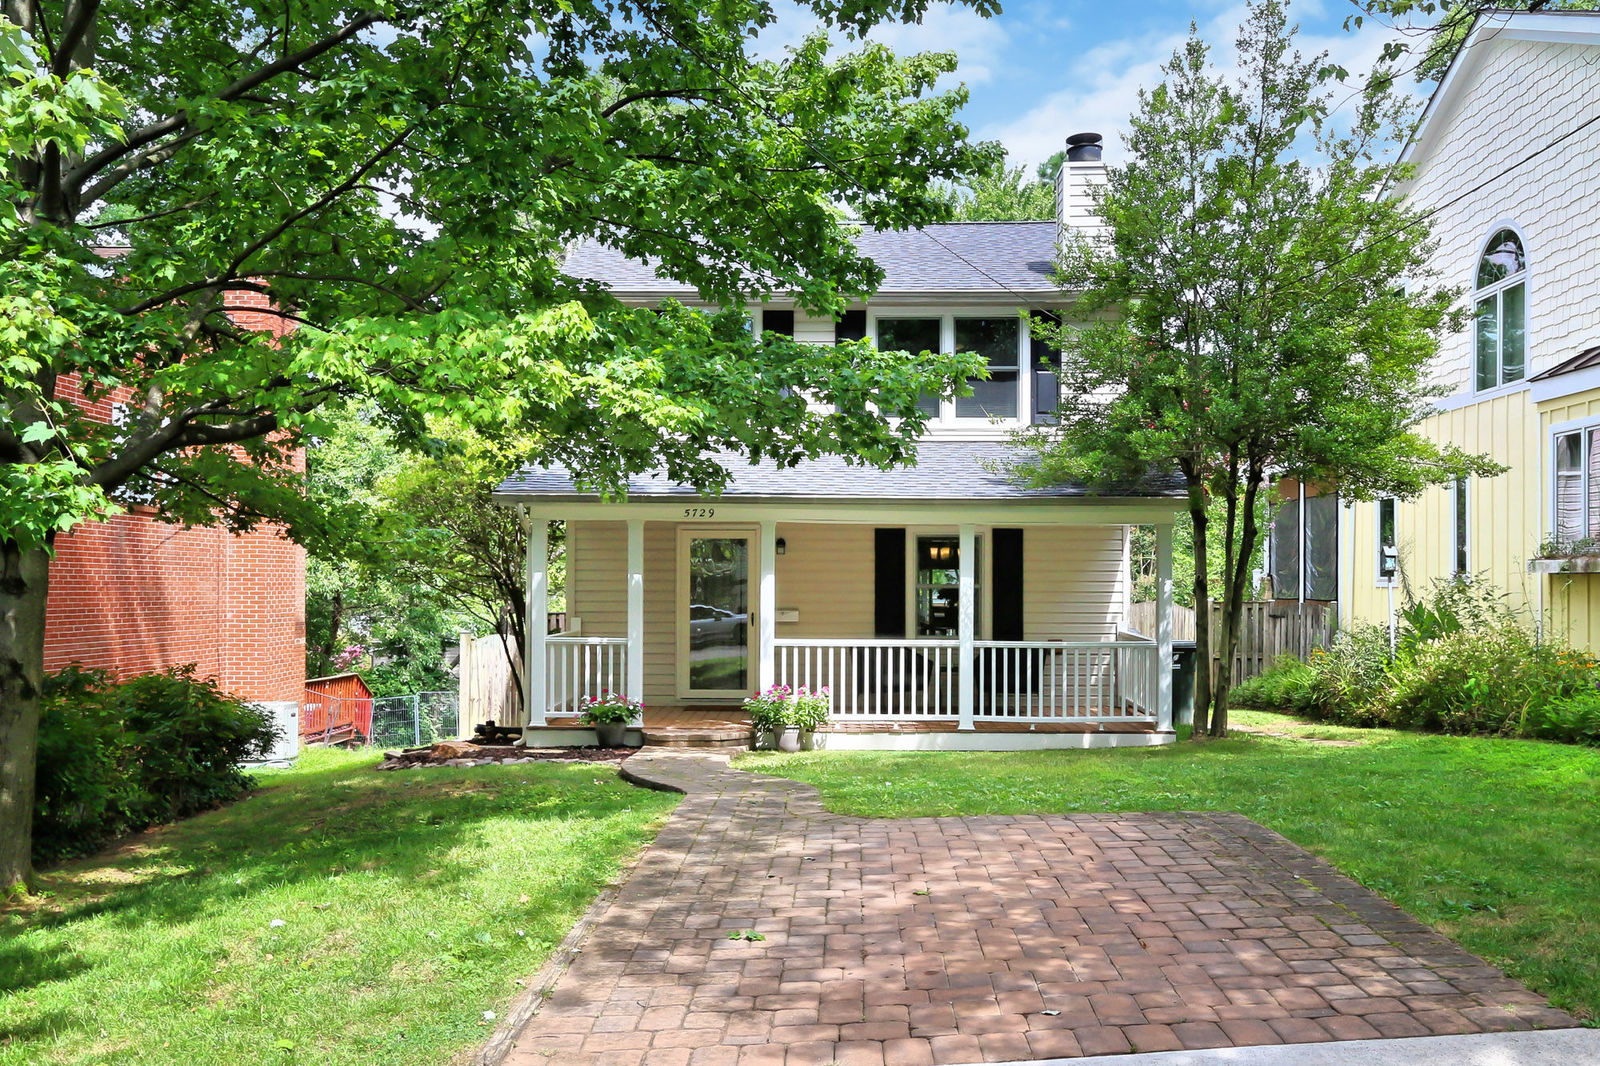 This Arlington Virginia home Located on a quiet cul-de-sac just a few steps from the W&OD bike trail